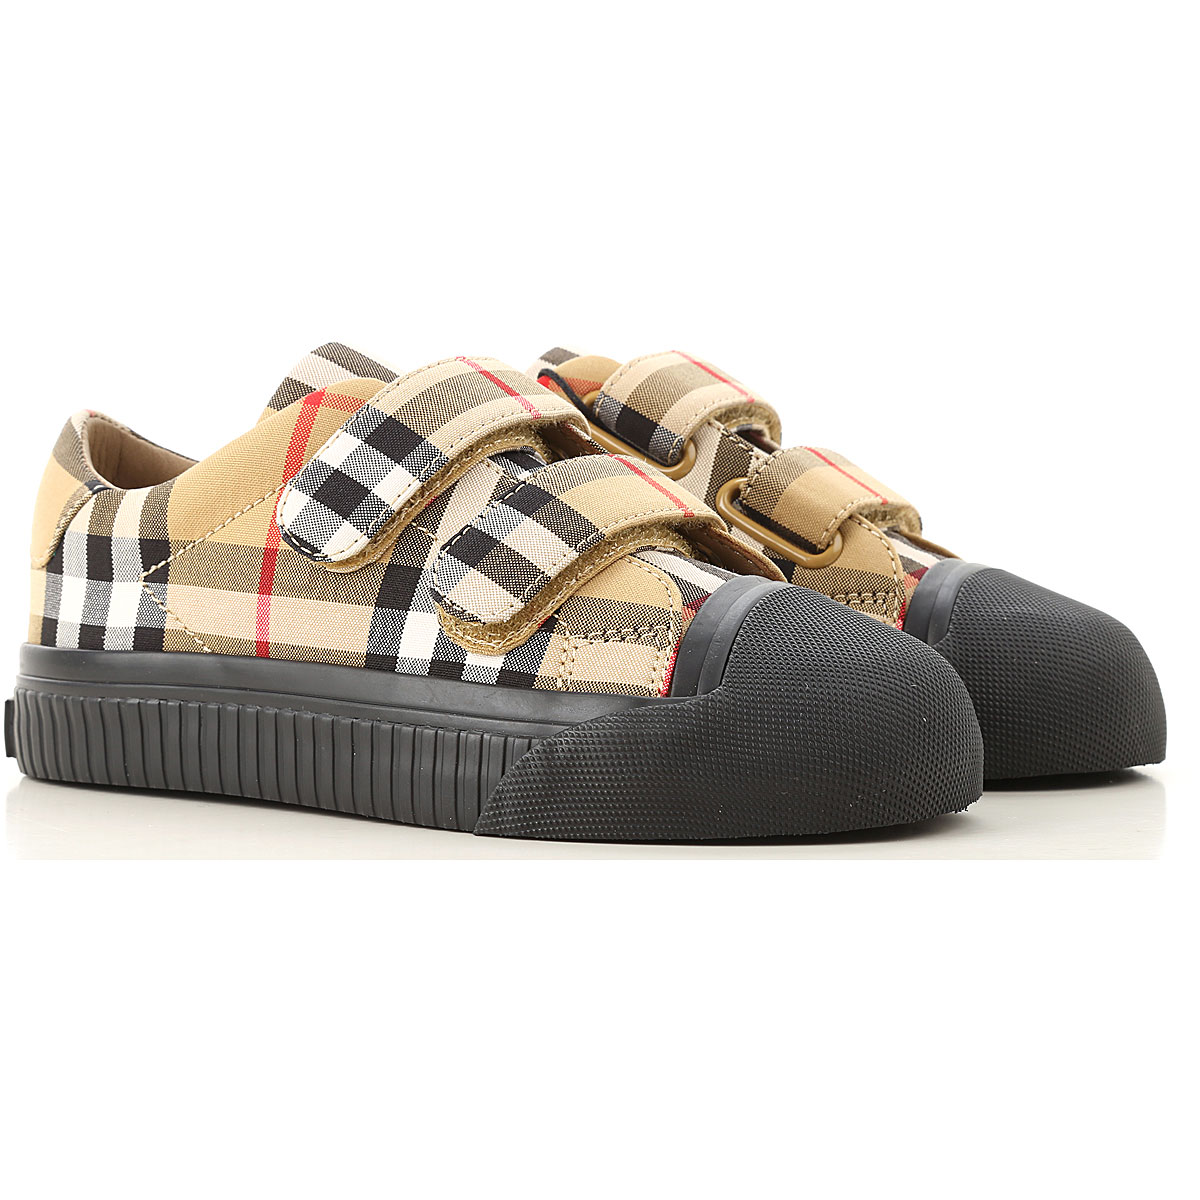 Image of Burberry Kids Shoes for Boys, Antique Yellow, Leather, 2017, 27 28 29 30 31 32 33 34 35